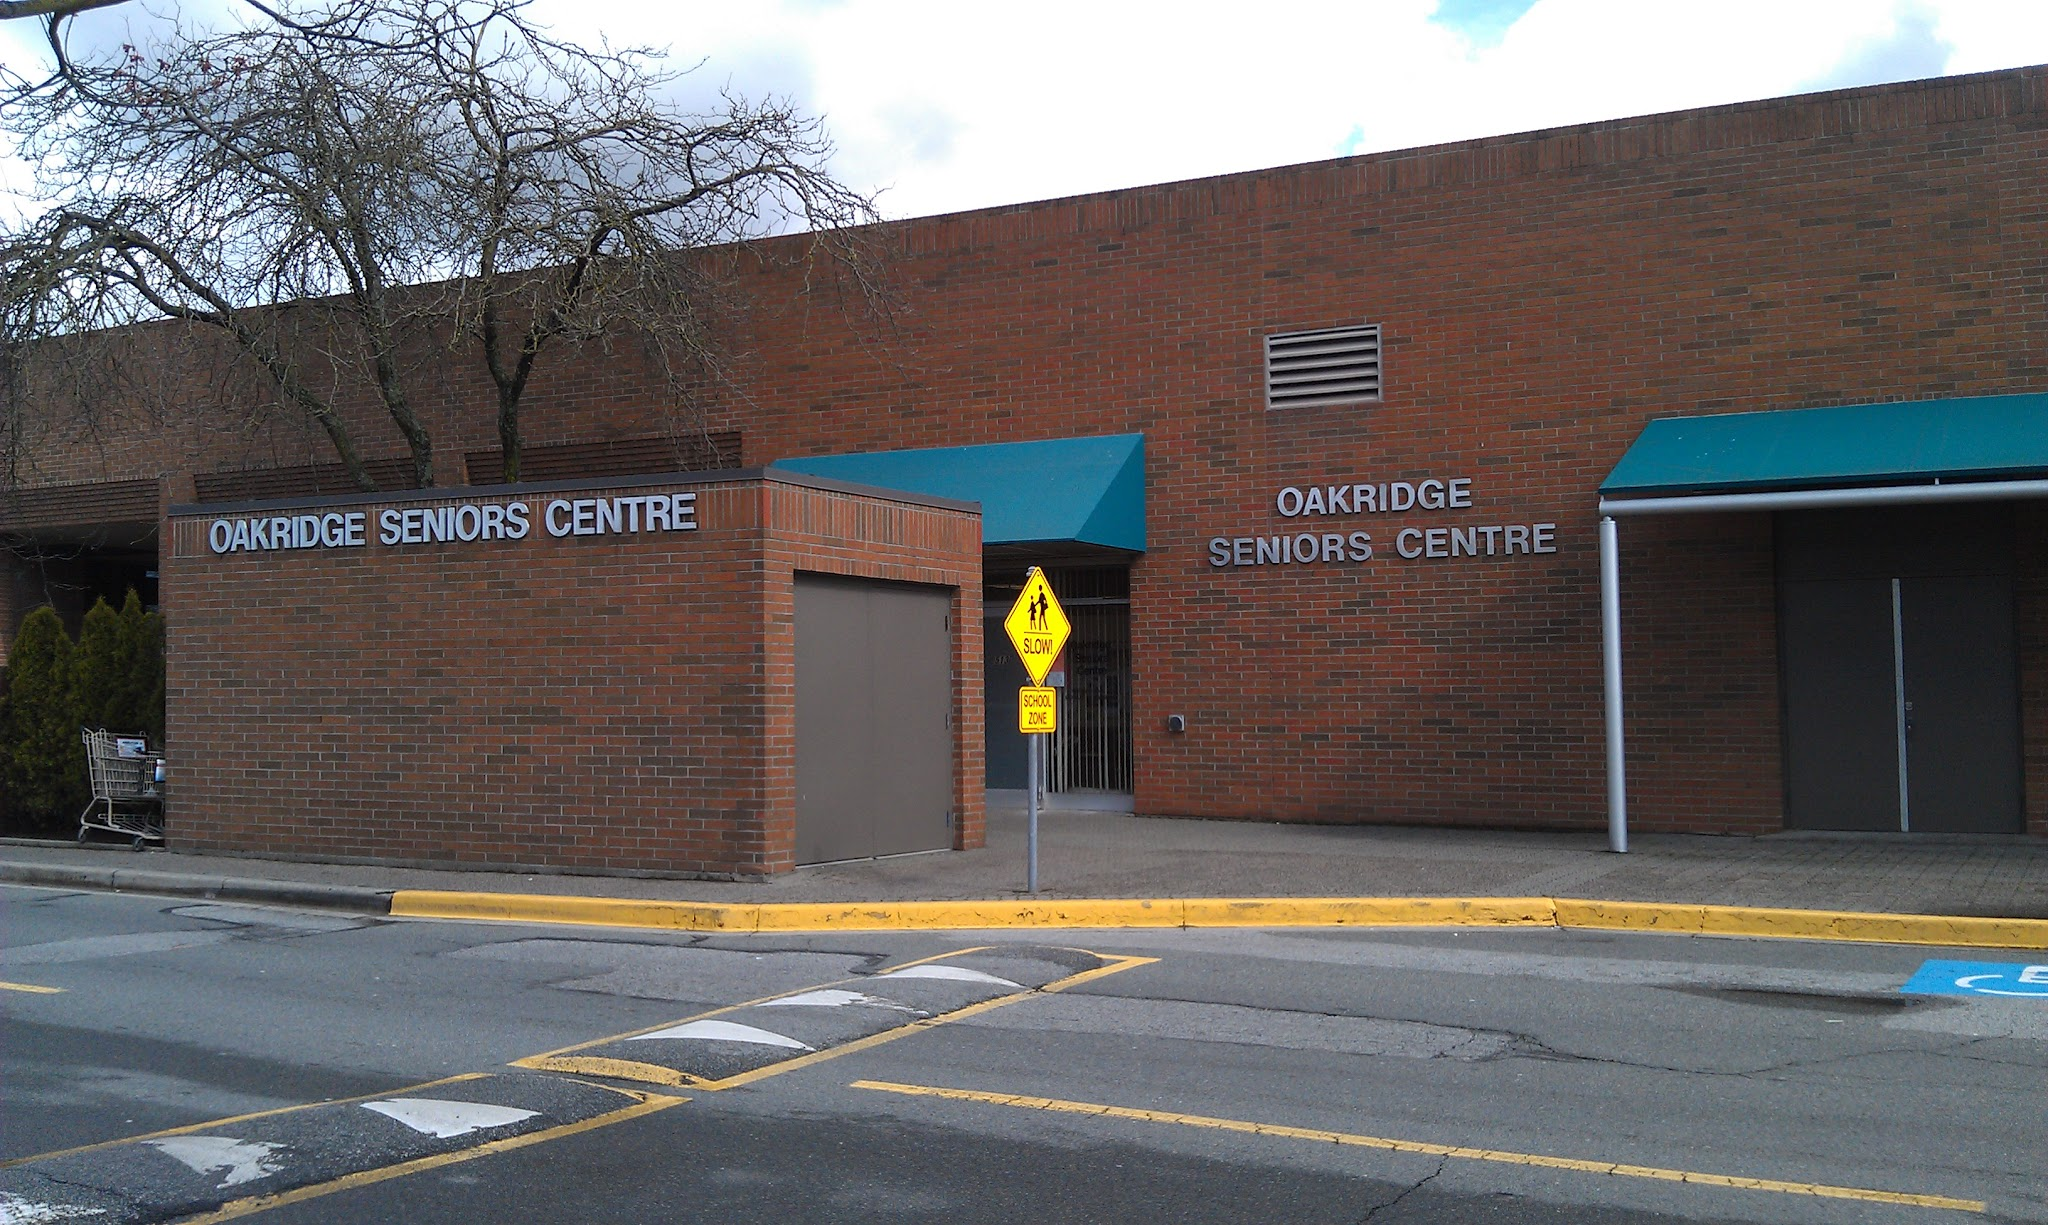 Oakridge Seniors' Centre